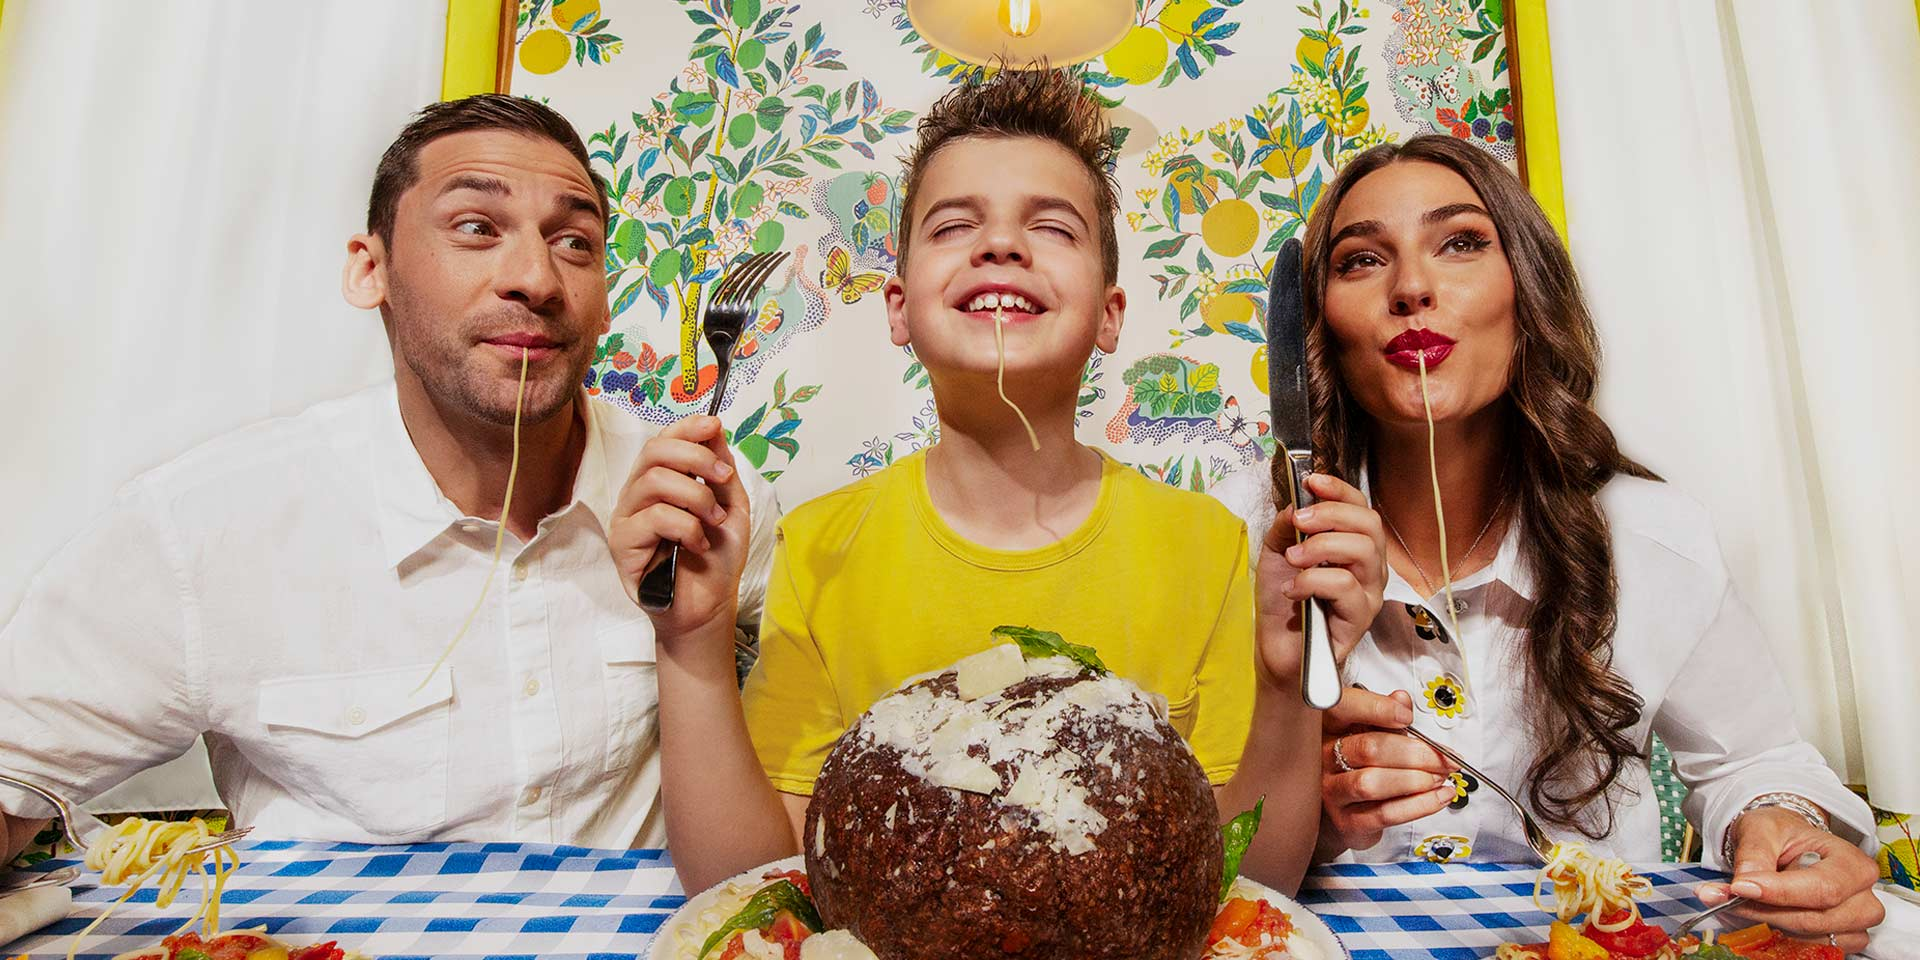 parents with their young son are slurping on spaghetti noodles and smiling